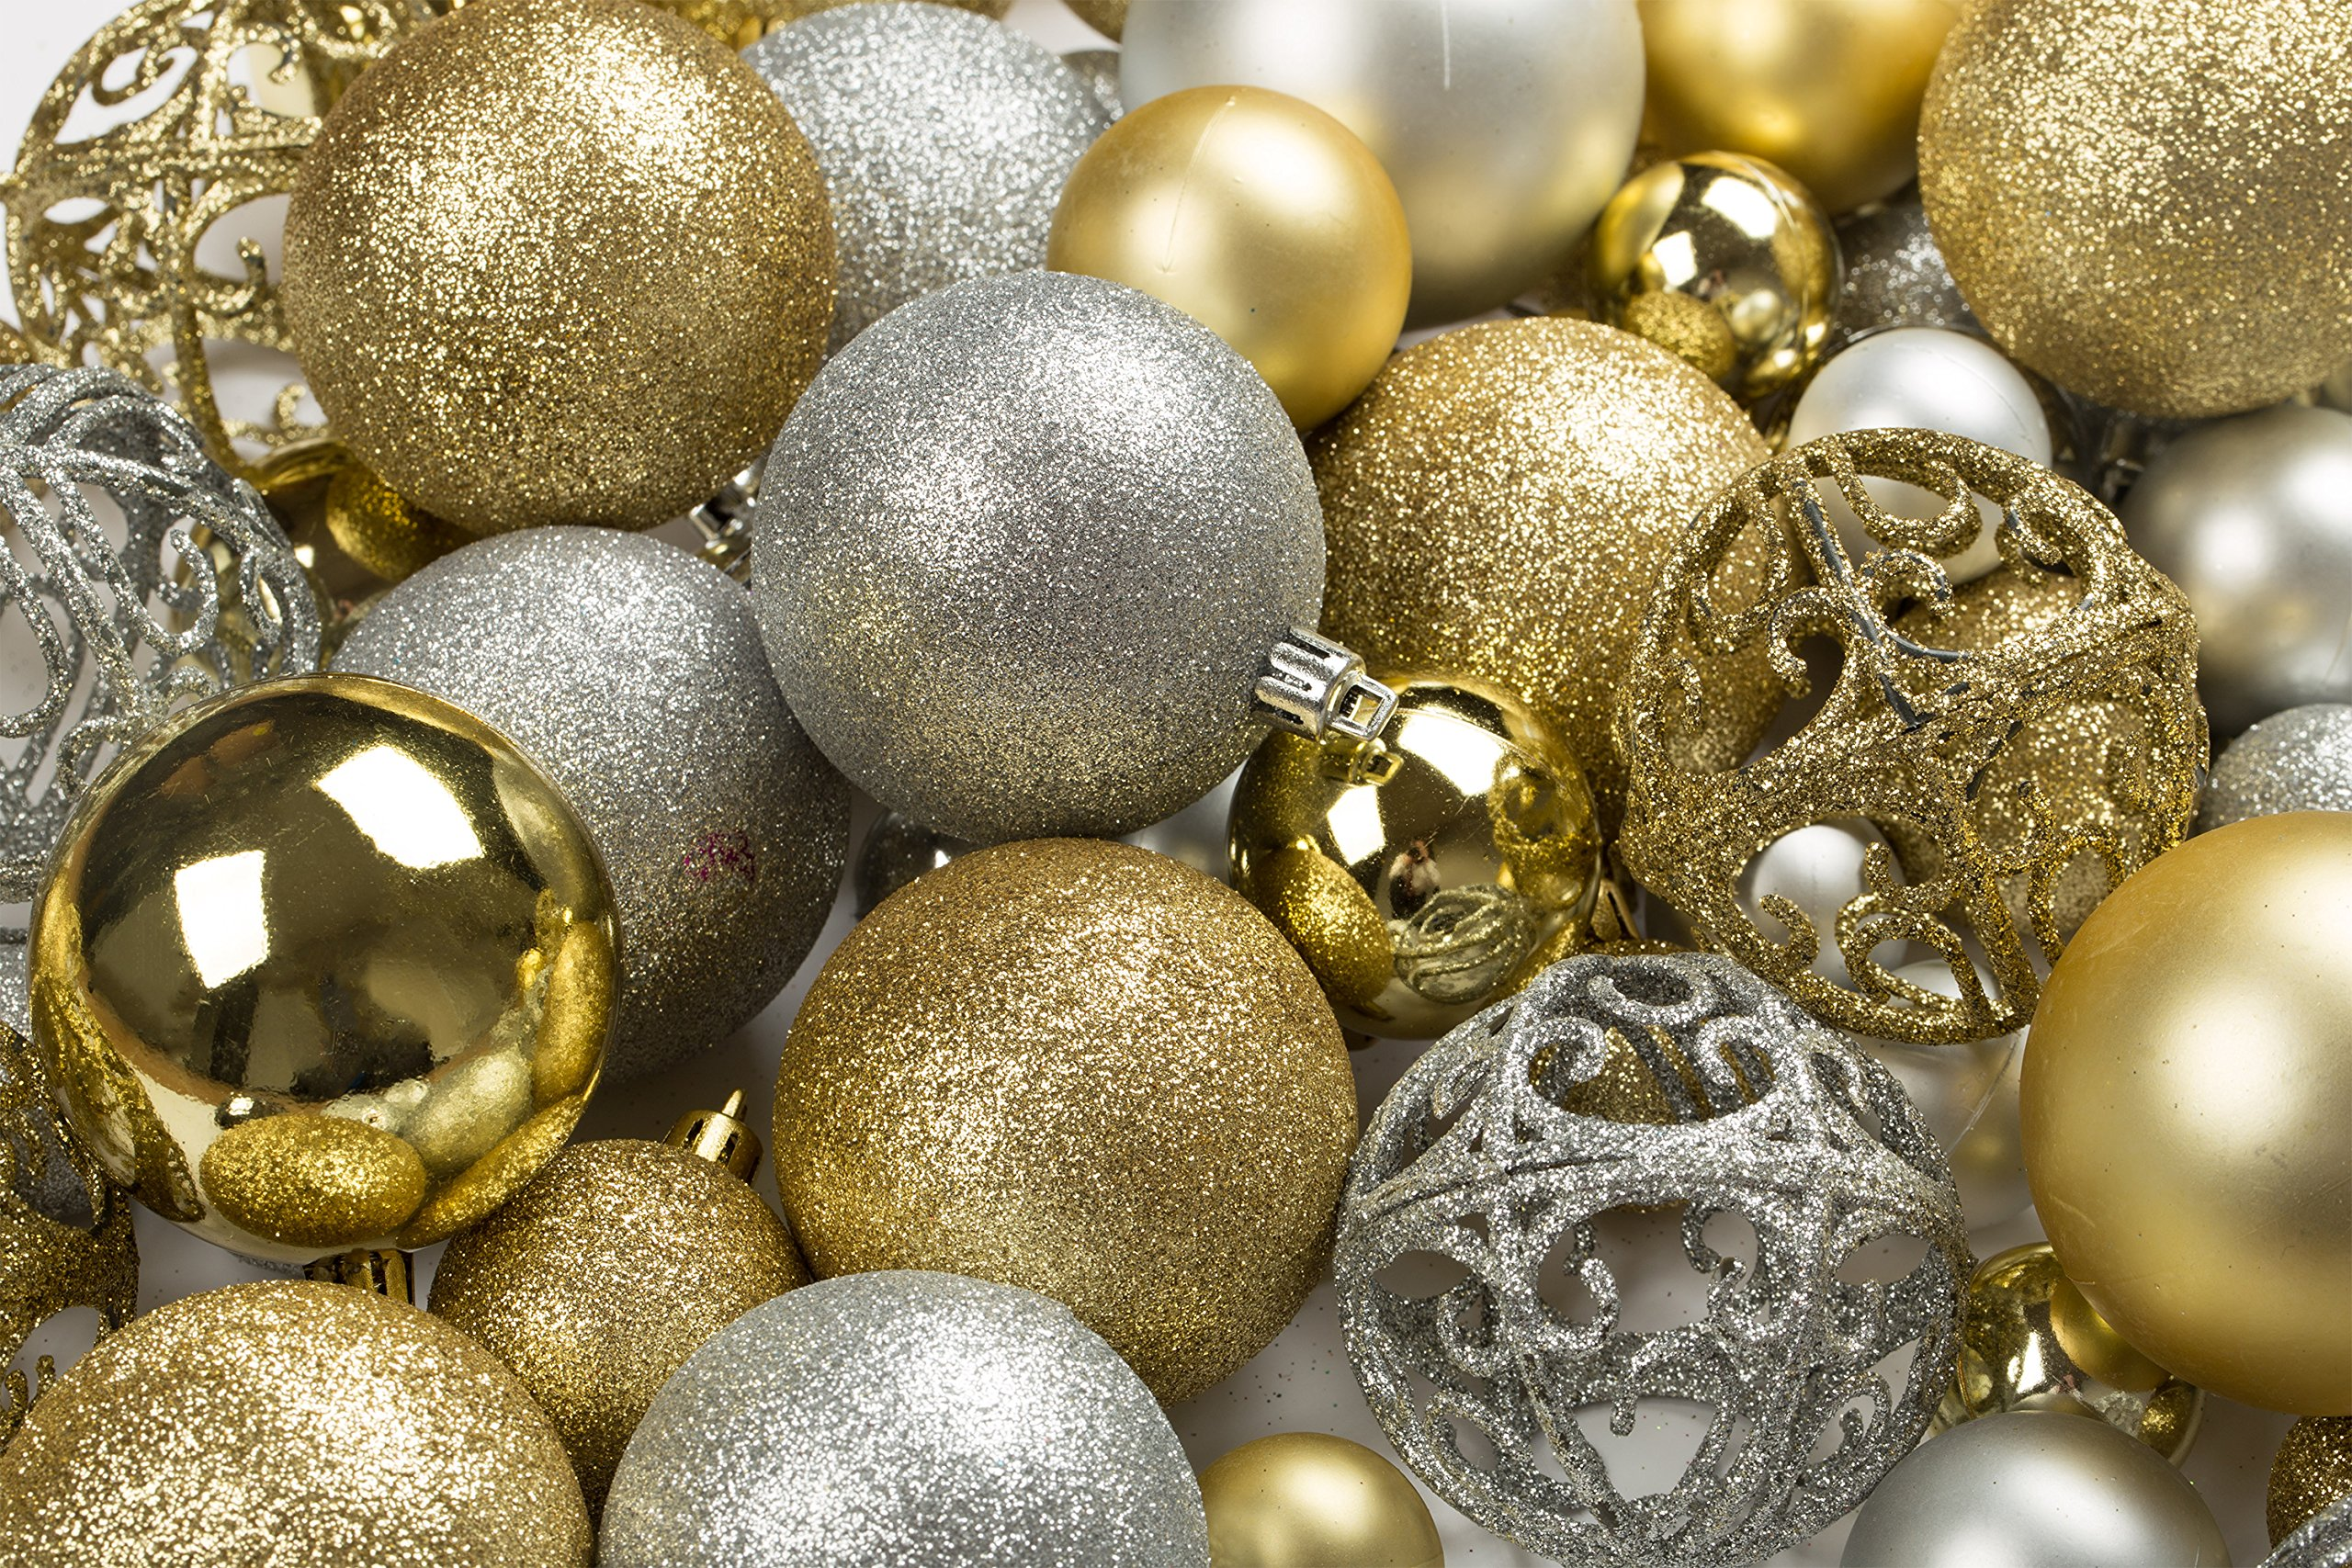 100 Gold And Silver Christmas Ornament Balls Shatterproof +100 Metal Ornament Hooks, Hanging Ornaments for Indoor/ Outdoor Christmas Tree, Holiday Party, Home Decor